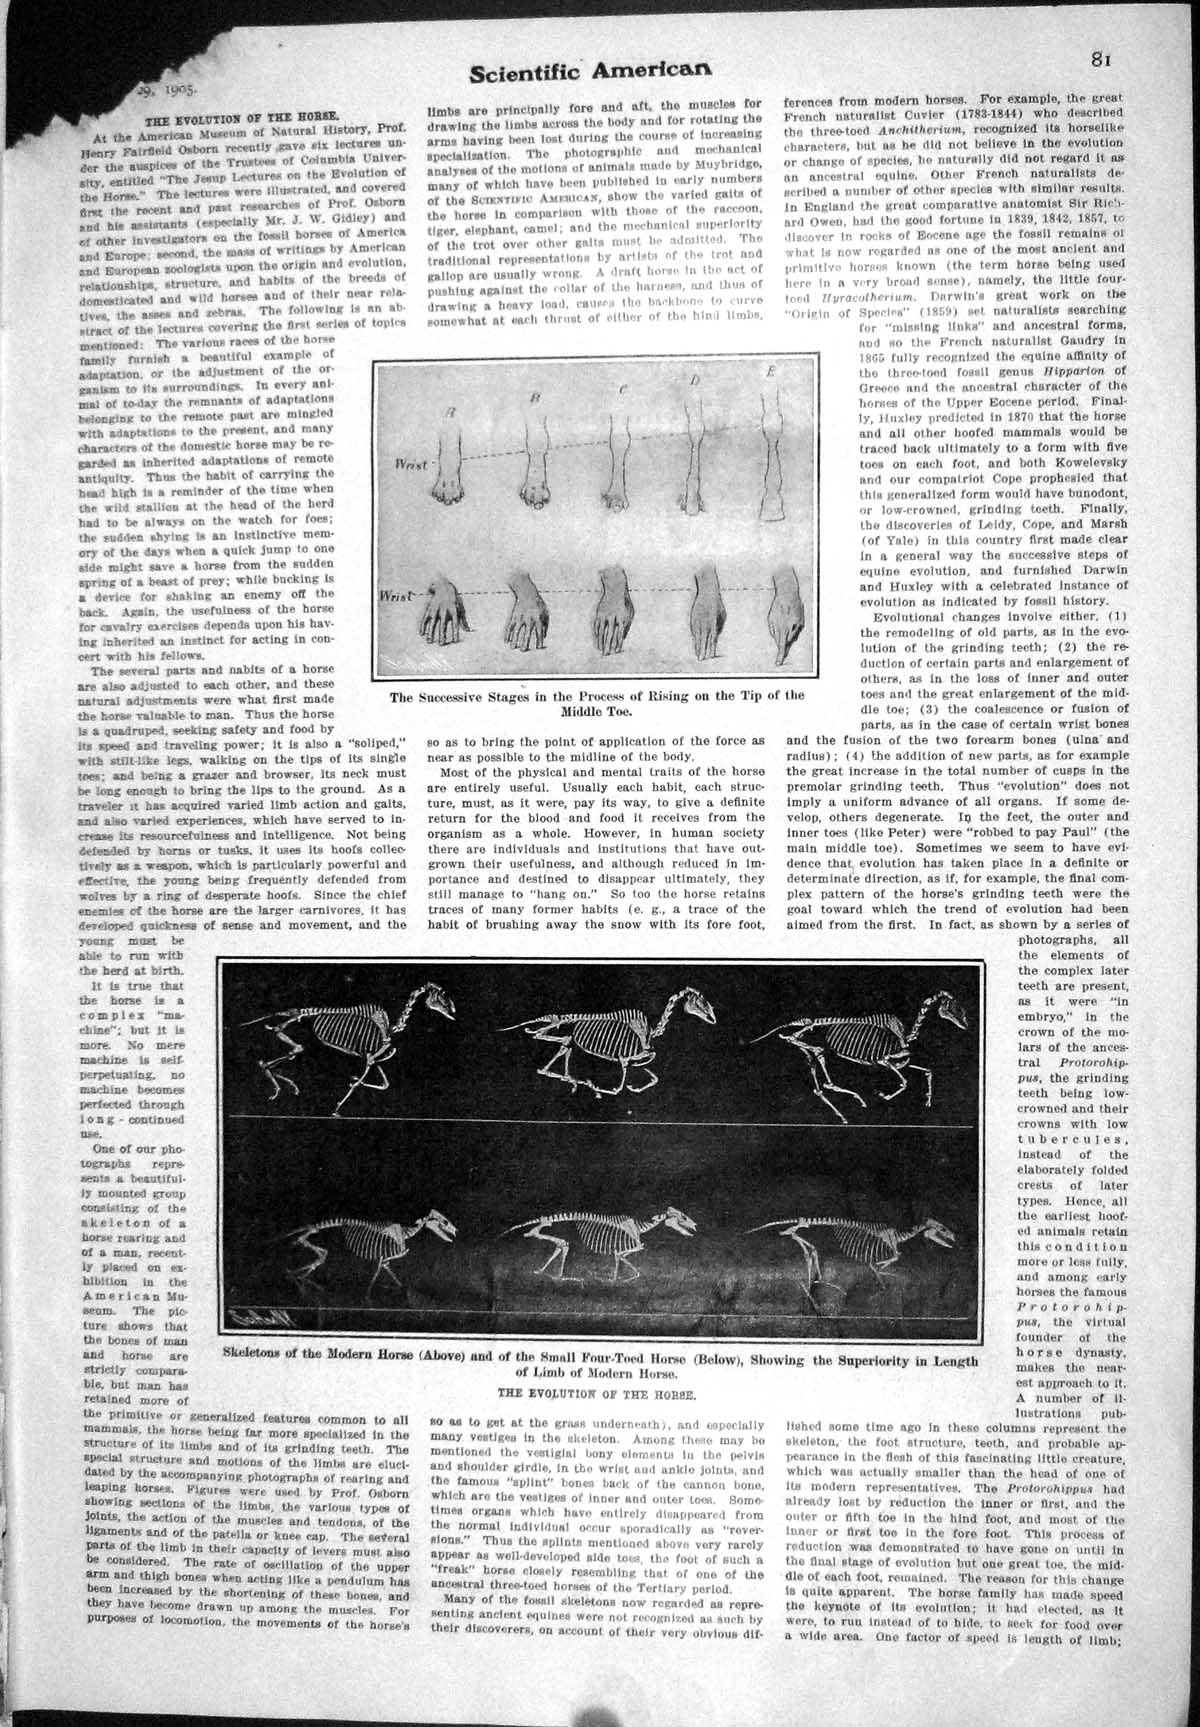 Old-1905-Scientific-American-Evolution-Horse-Rising-Middle-Toe-Interr-20th